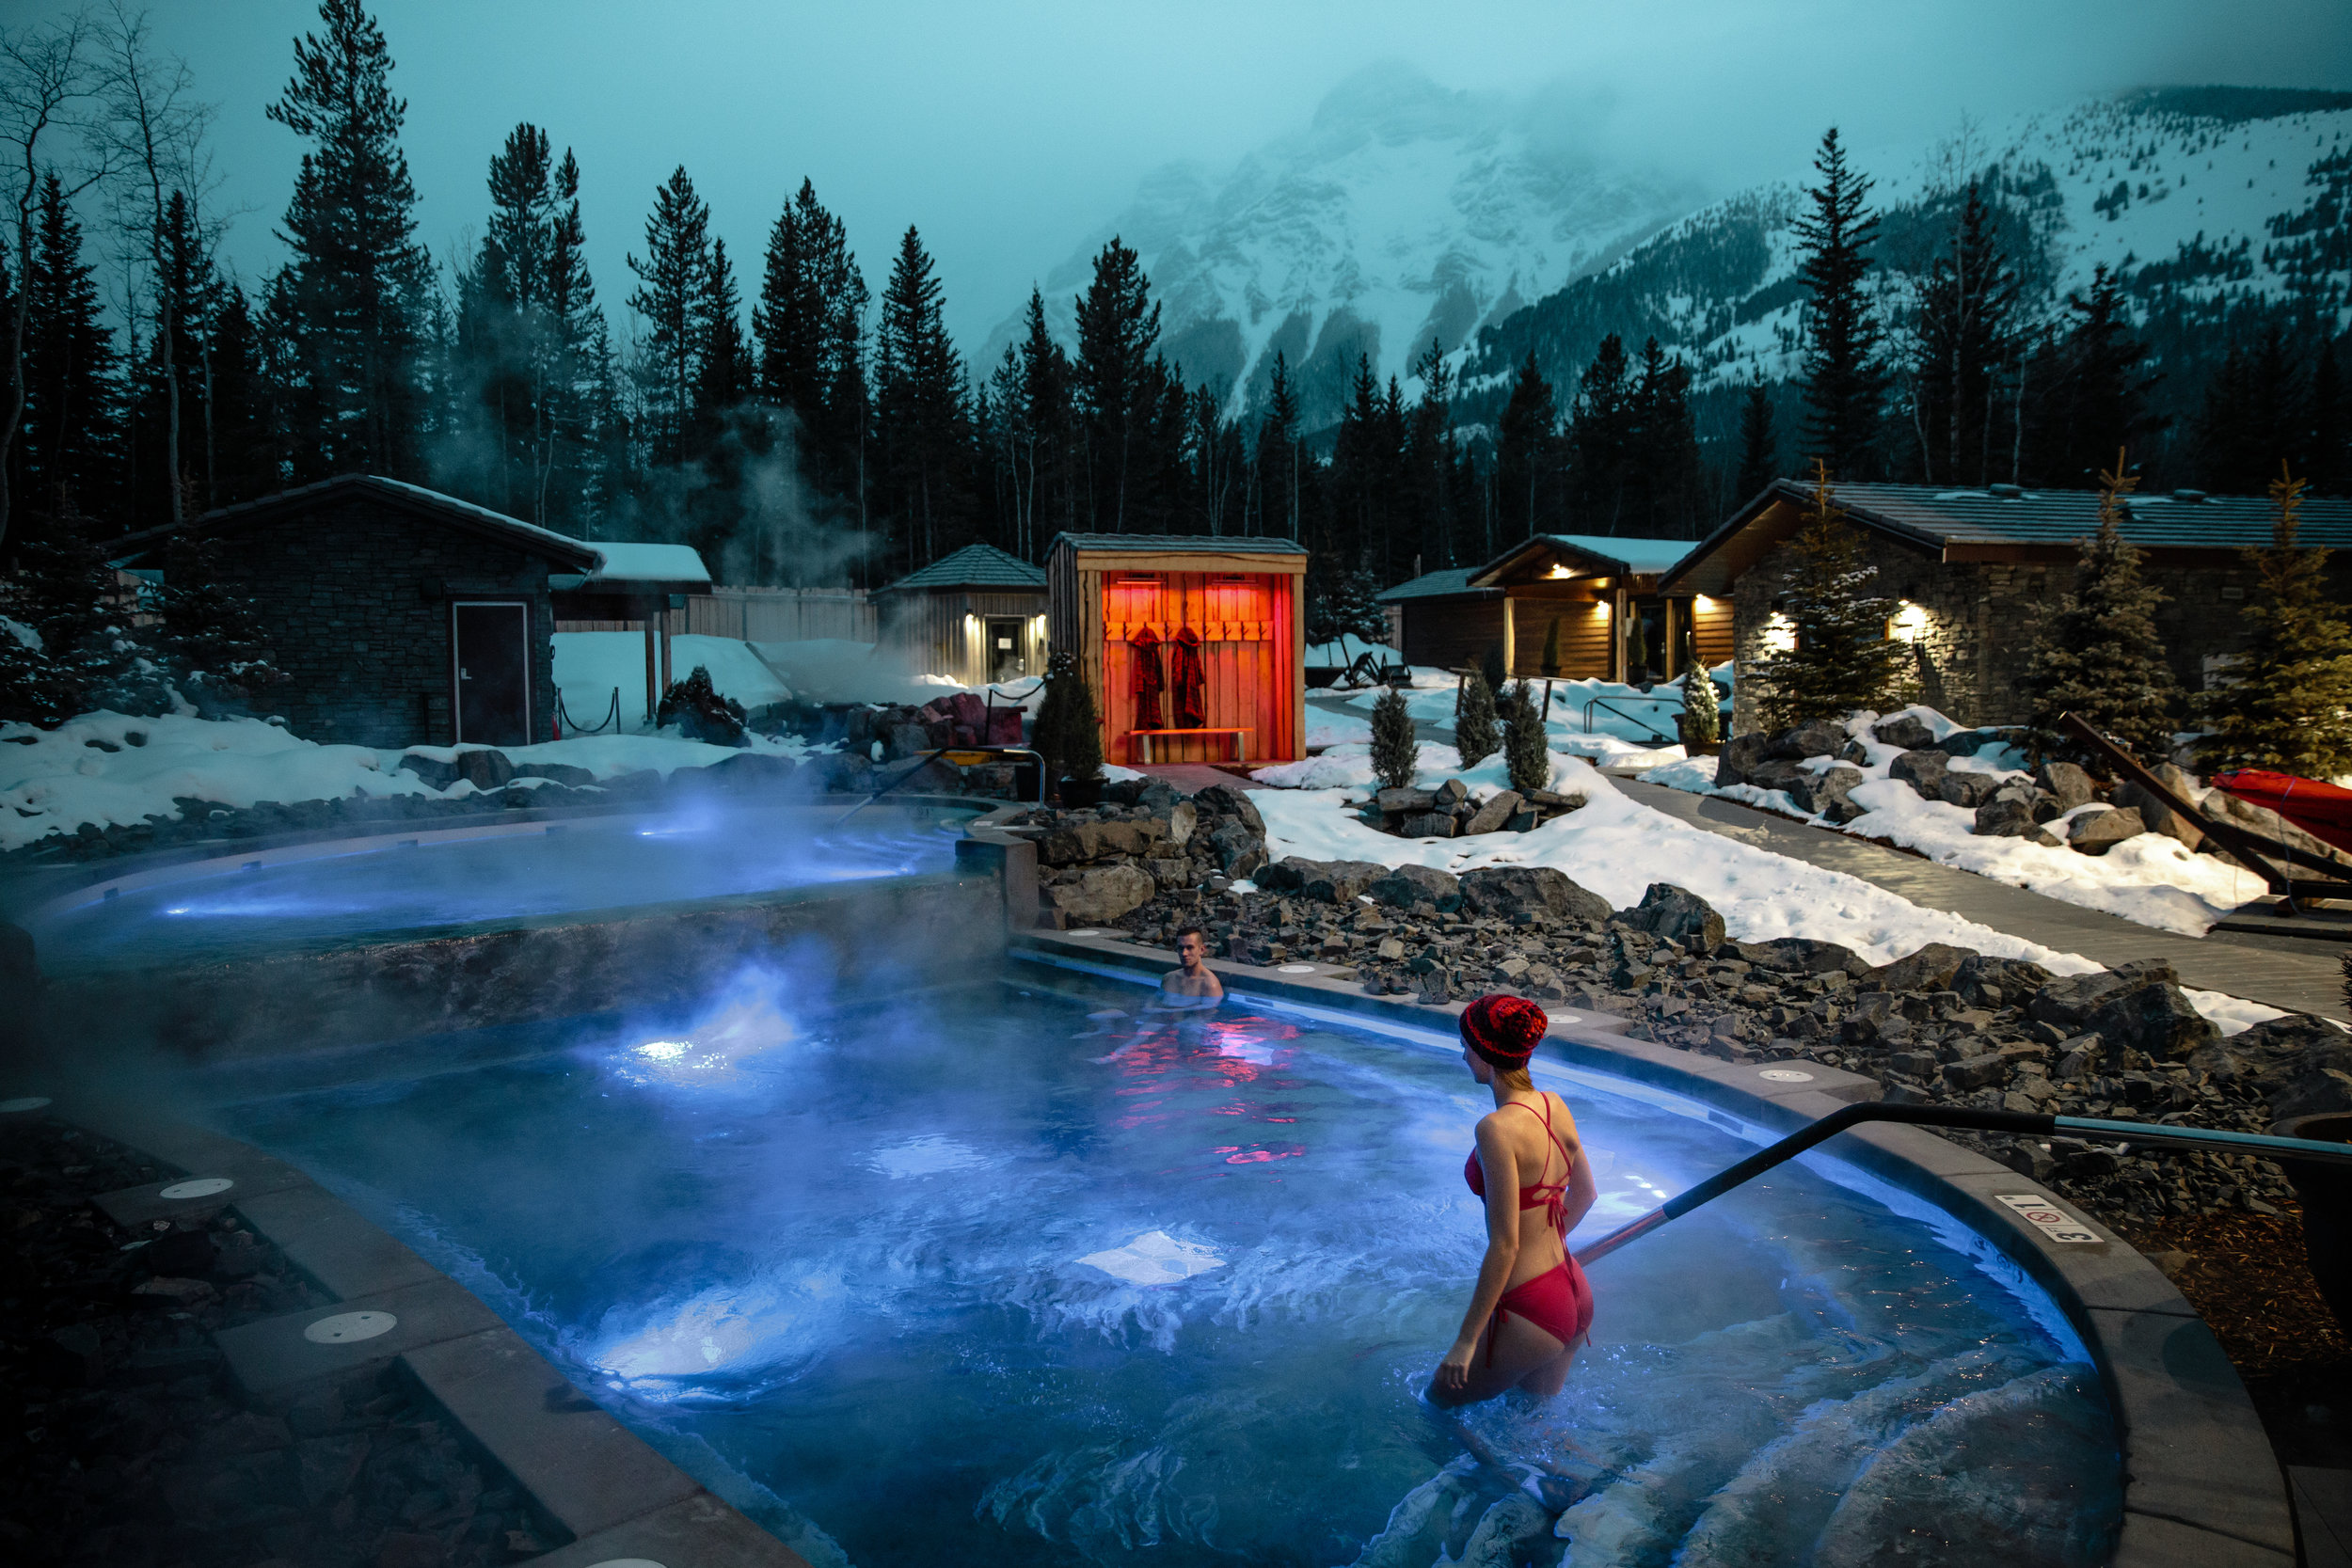 Photo credit: Mike Seehagel, Travel Alberta, Kananaskis Nordic Spa. Used with permission.